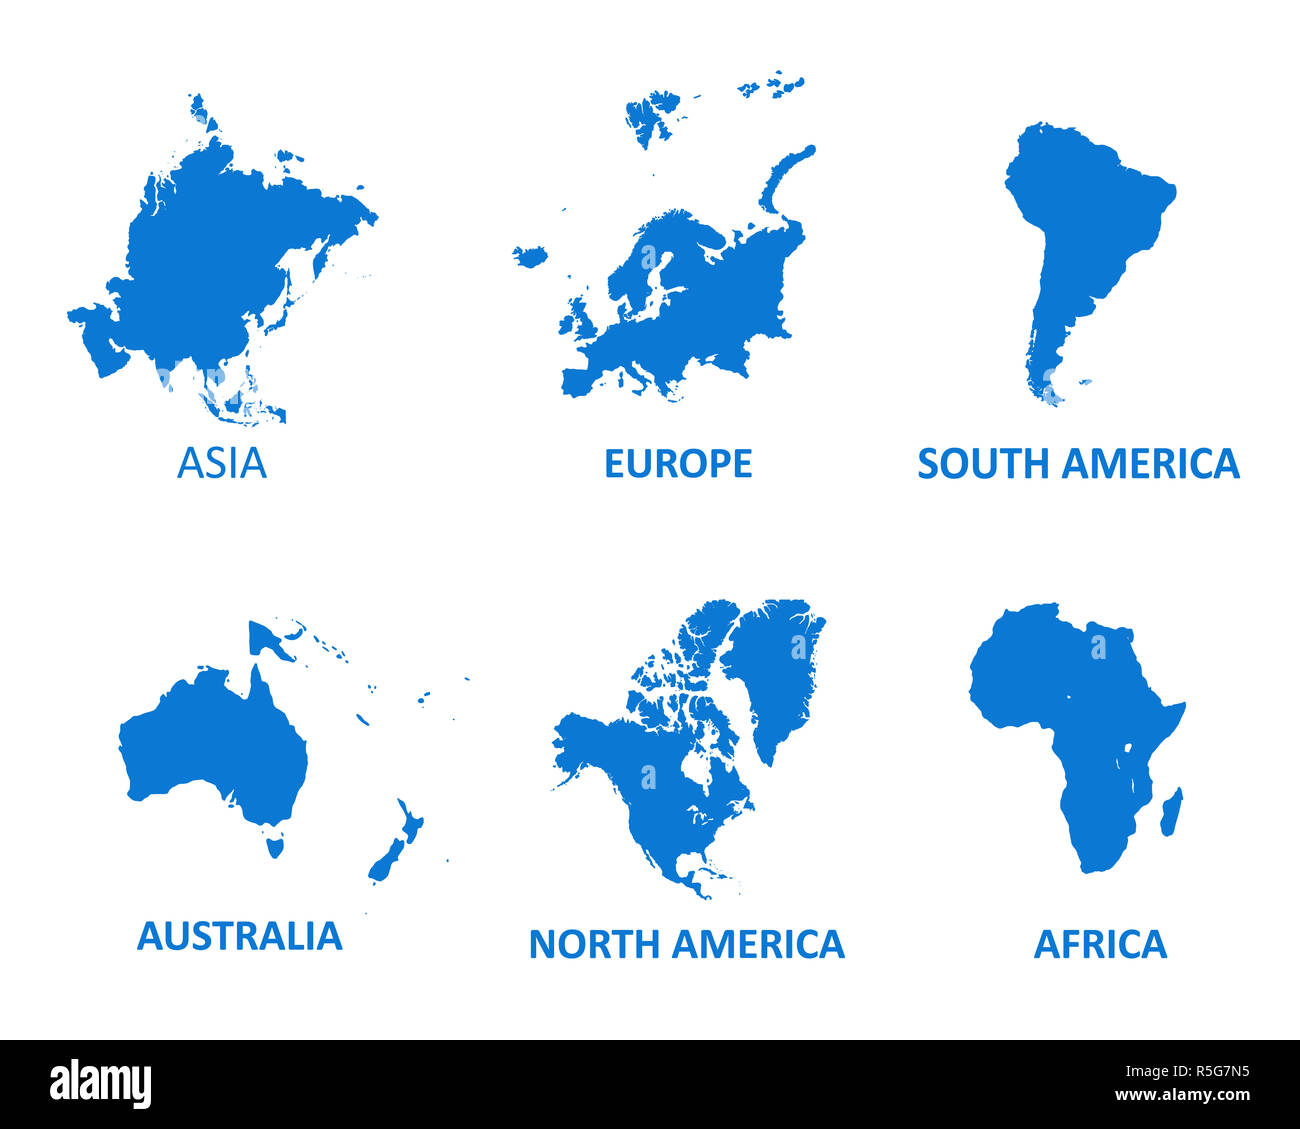 World Continents vector map. vector illustration on white background ...